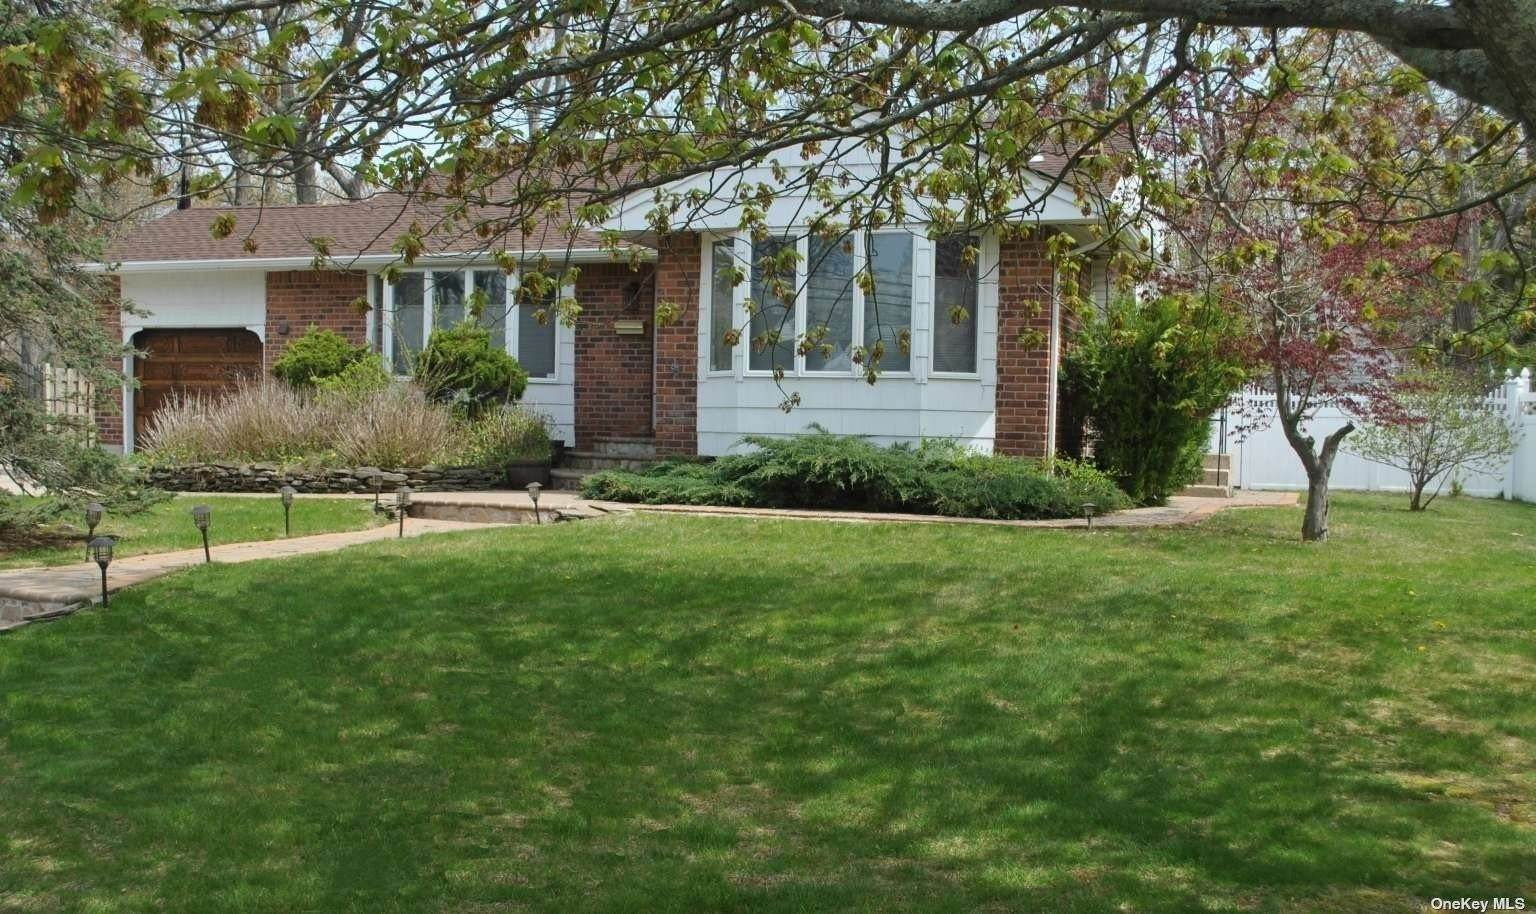 Residential for Sale at 68 Craig Road Islip Terrace, New York 11752 United States